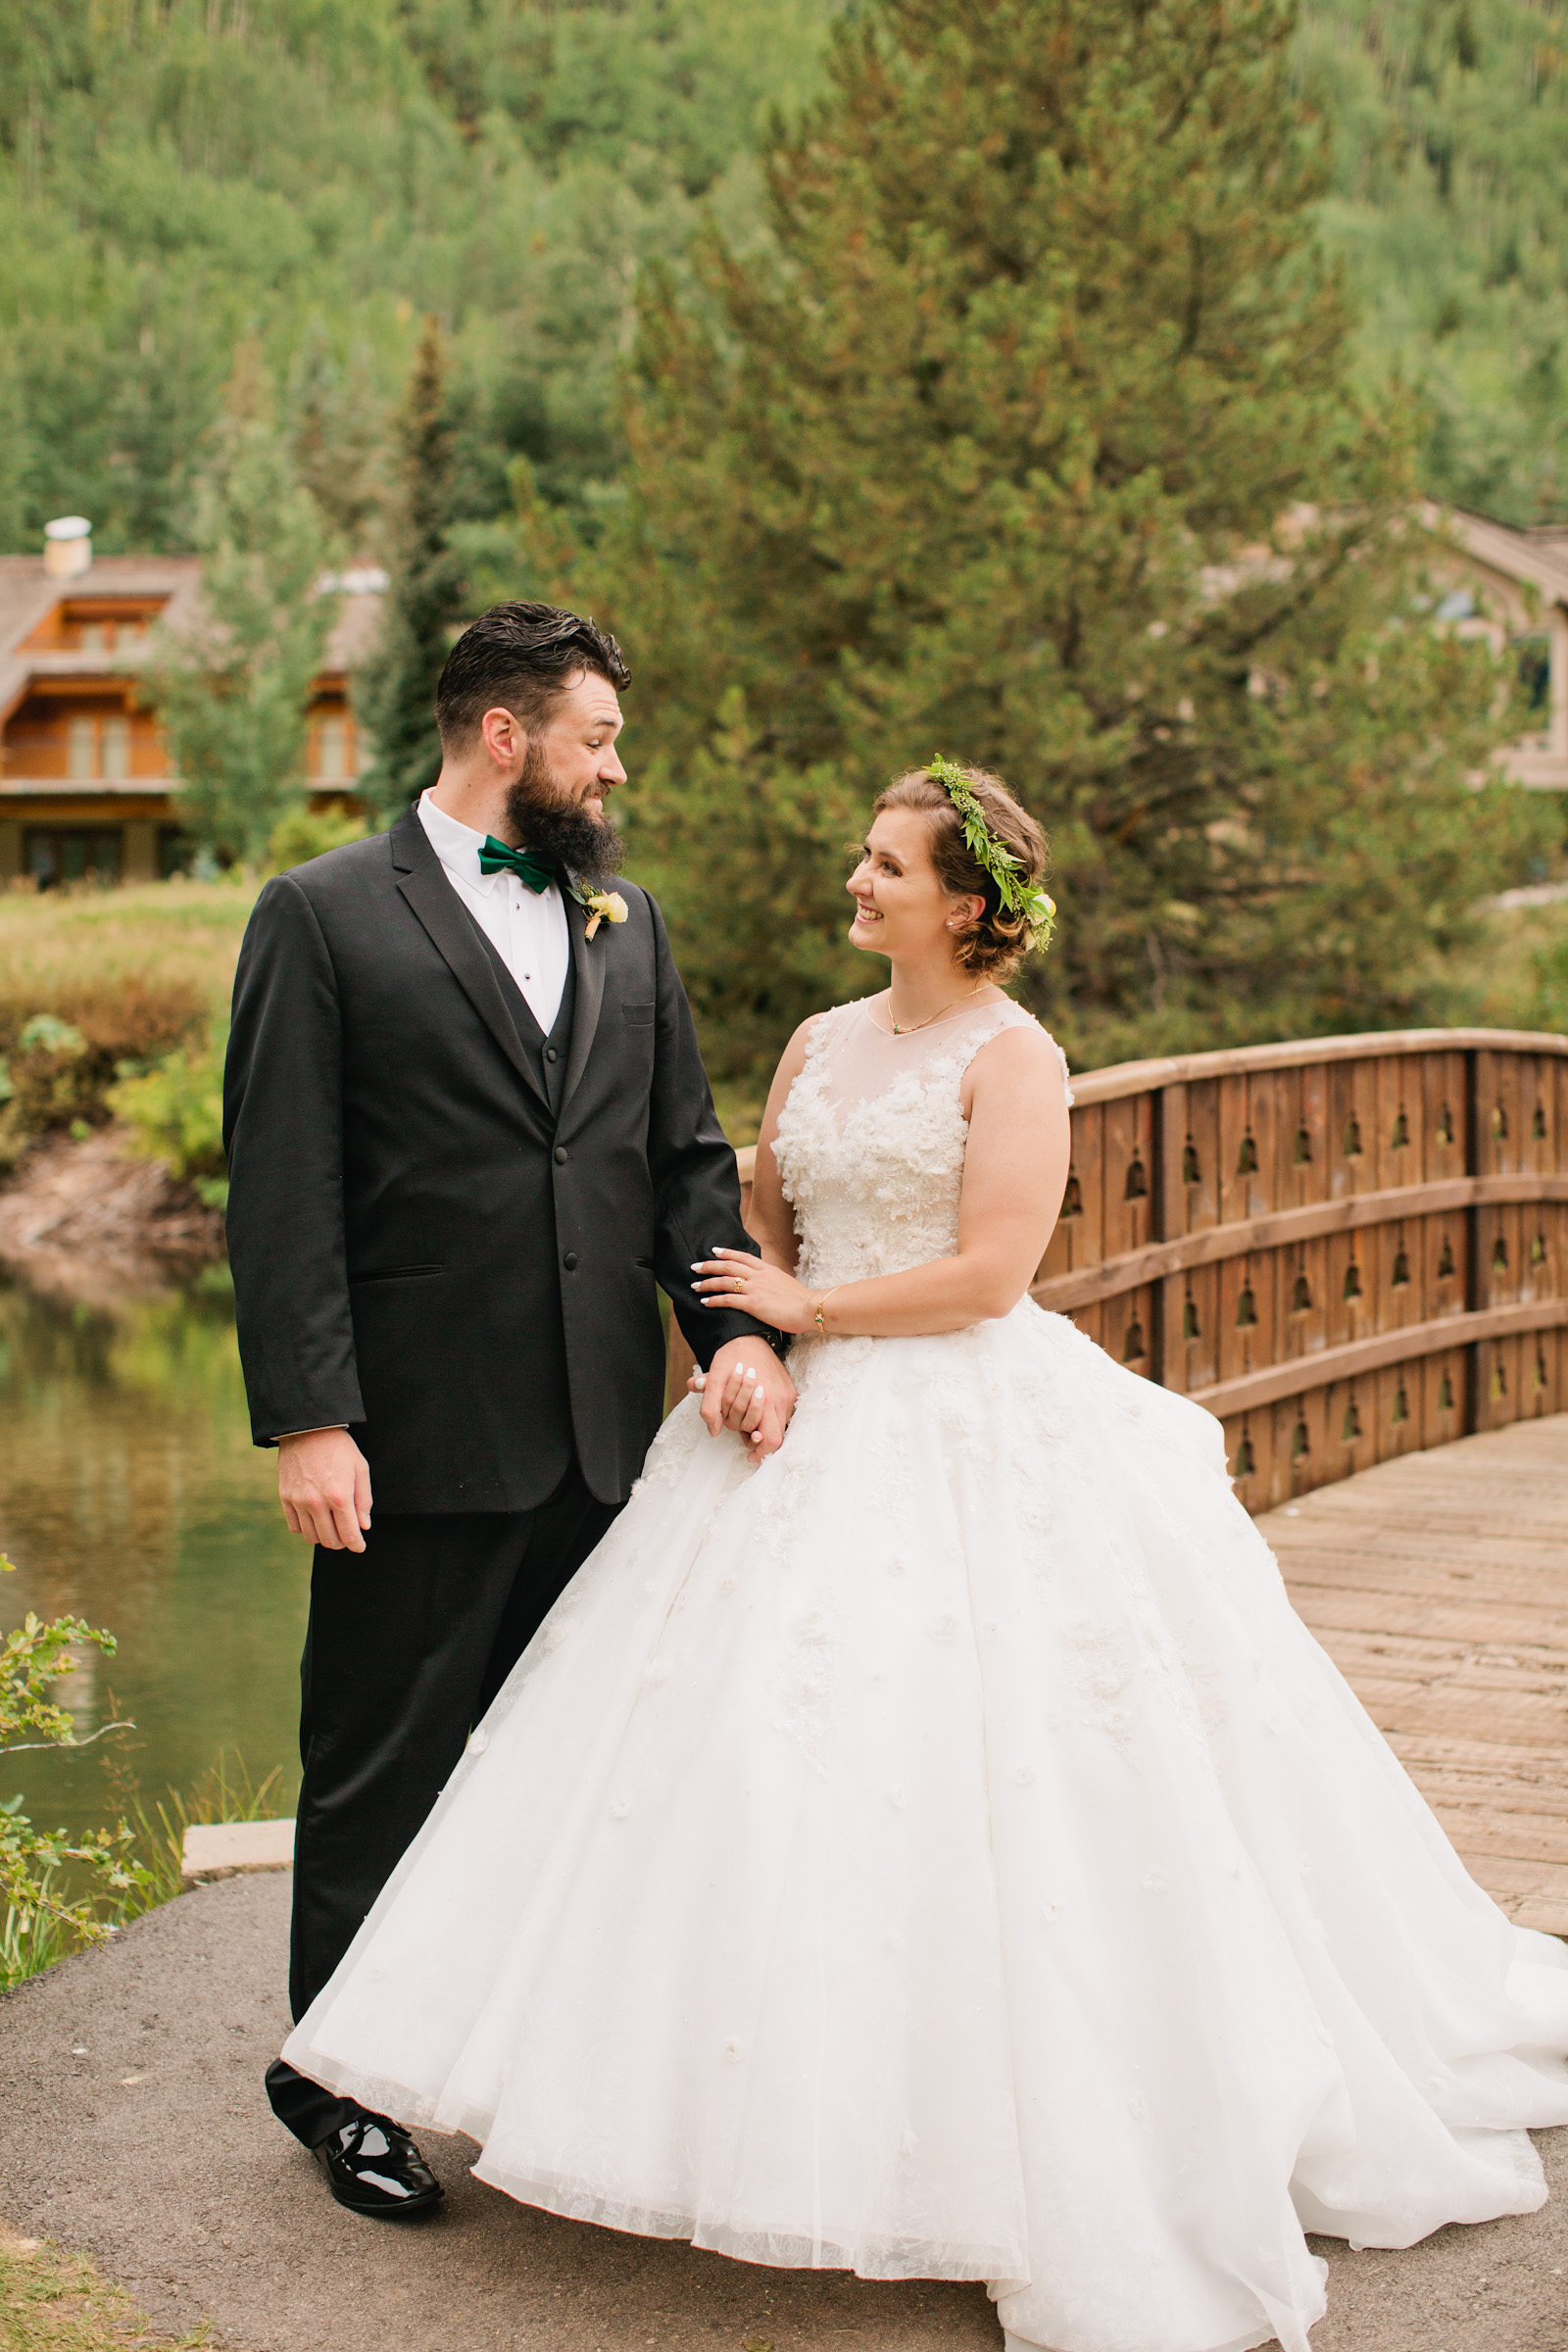 romantic wedding pictures at the base of a mountain lake in Vail, Colorado